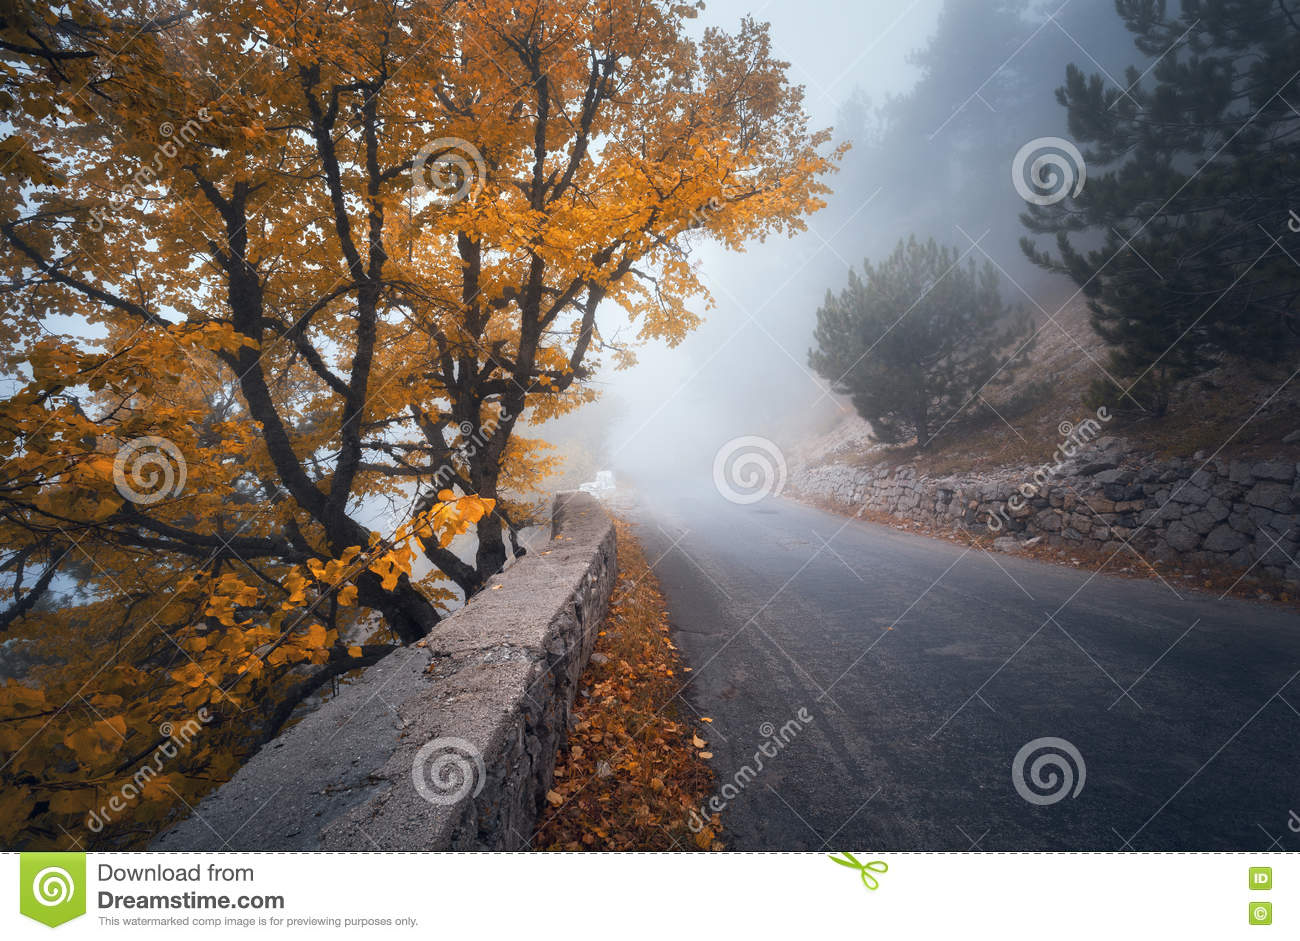 Mystical autumn foggy forest with road. Fall misty woods